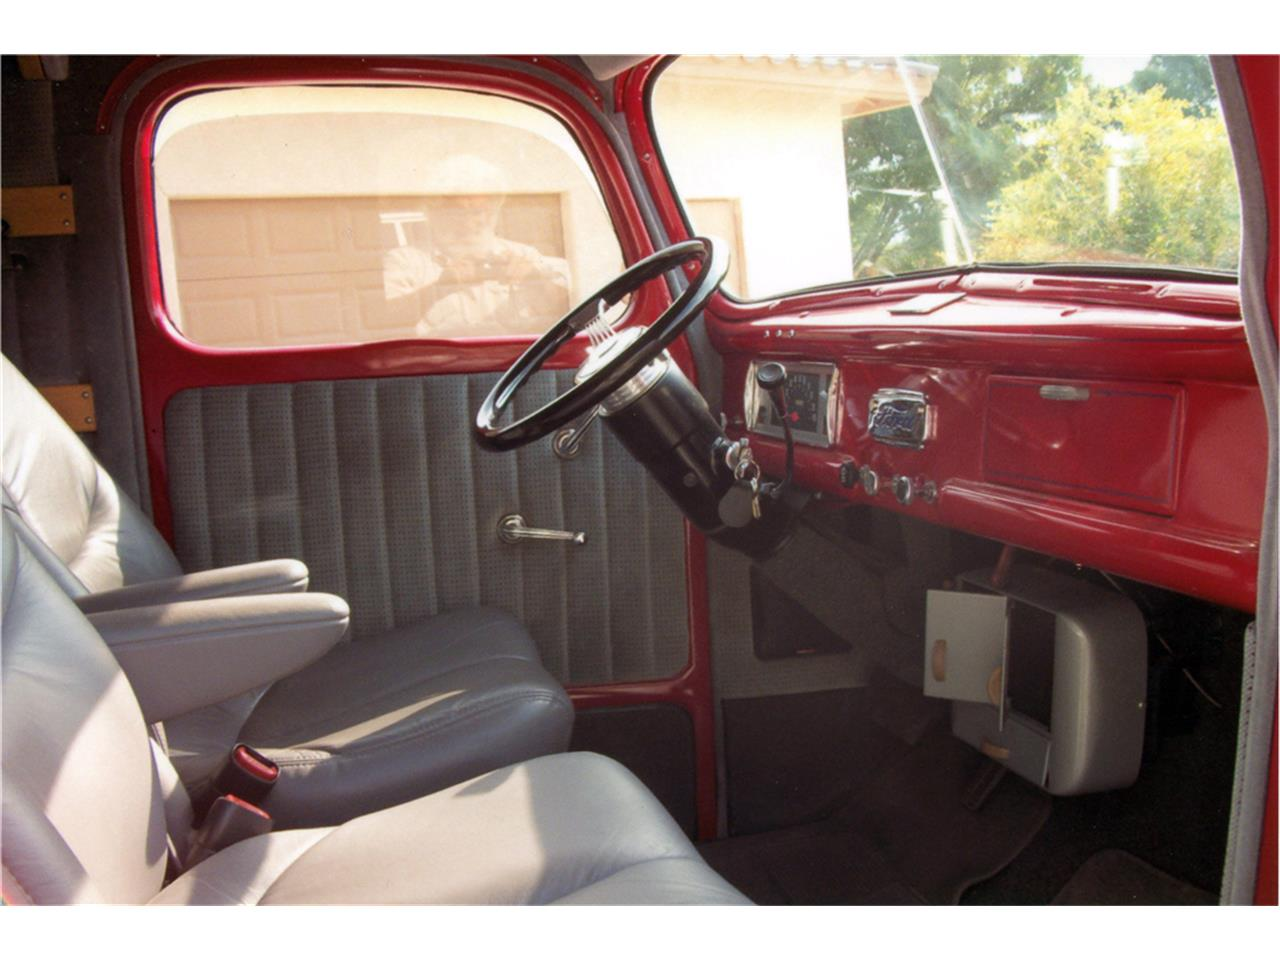 1941 Ford Sedan Delivery For Sale Cc 1137470 Vin Location Large Picture Of 41 Odoe